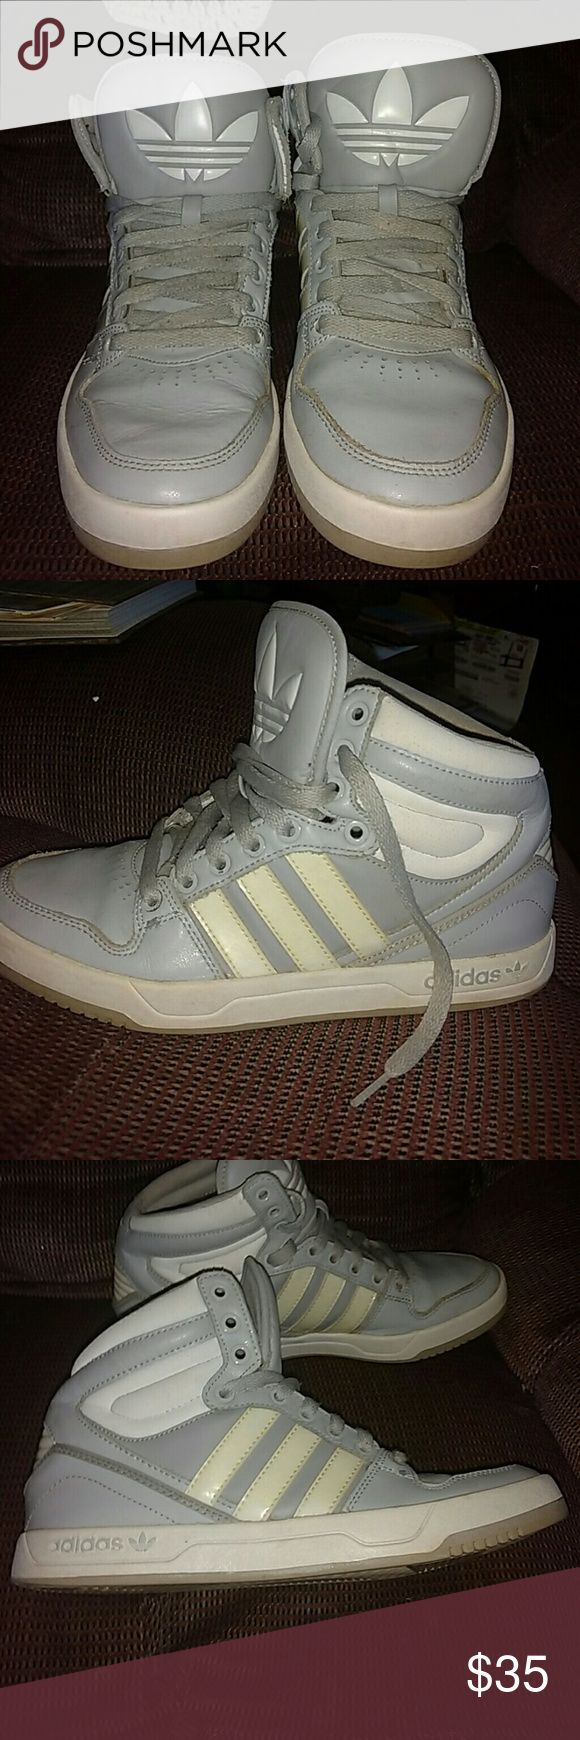 Leather ADIDAS HIGH TOP BASKETBALL SHOES GENUINE LEATHER MENS ADIDAS HIGH TOP BASKETBALL SHOES adidas Shoes Athletic Shoes